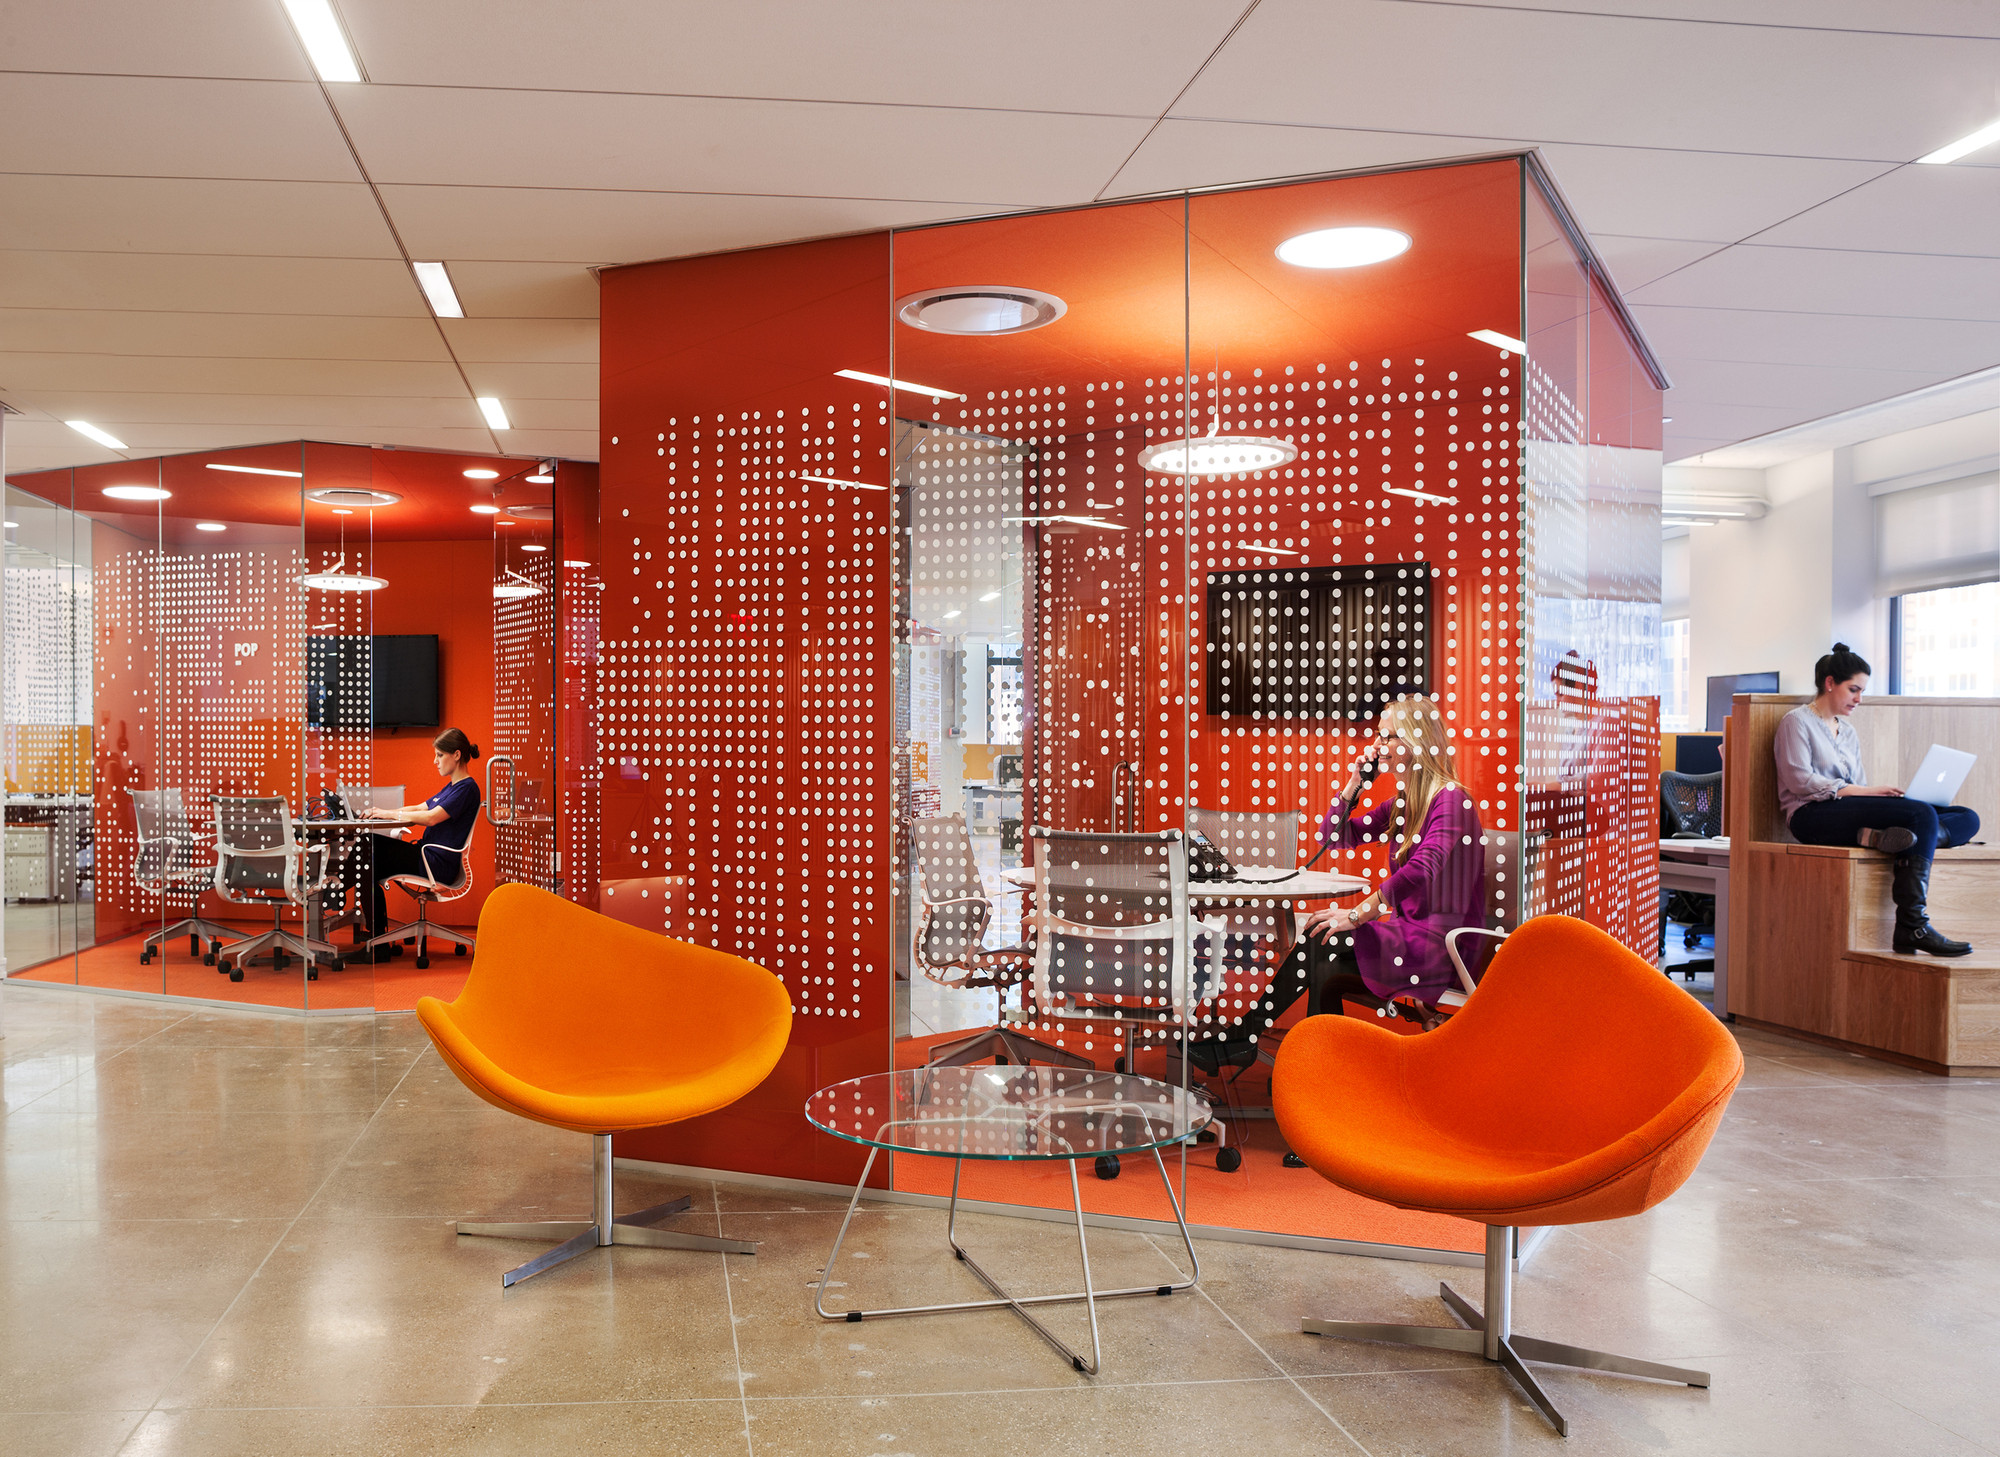 When One Size Does Not Fit All: Rethinking the Open Office